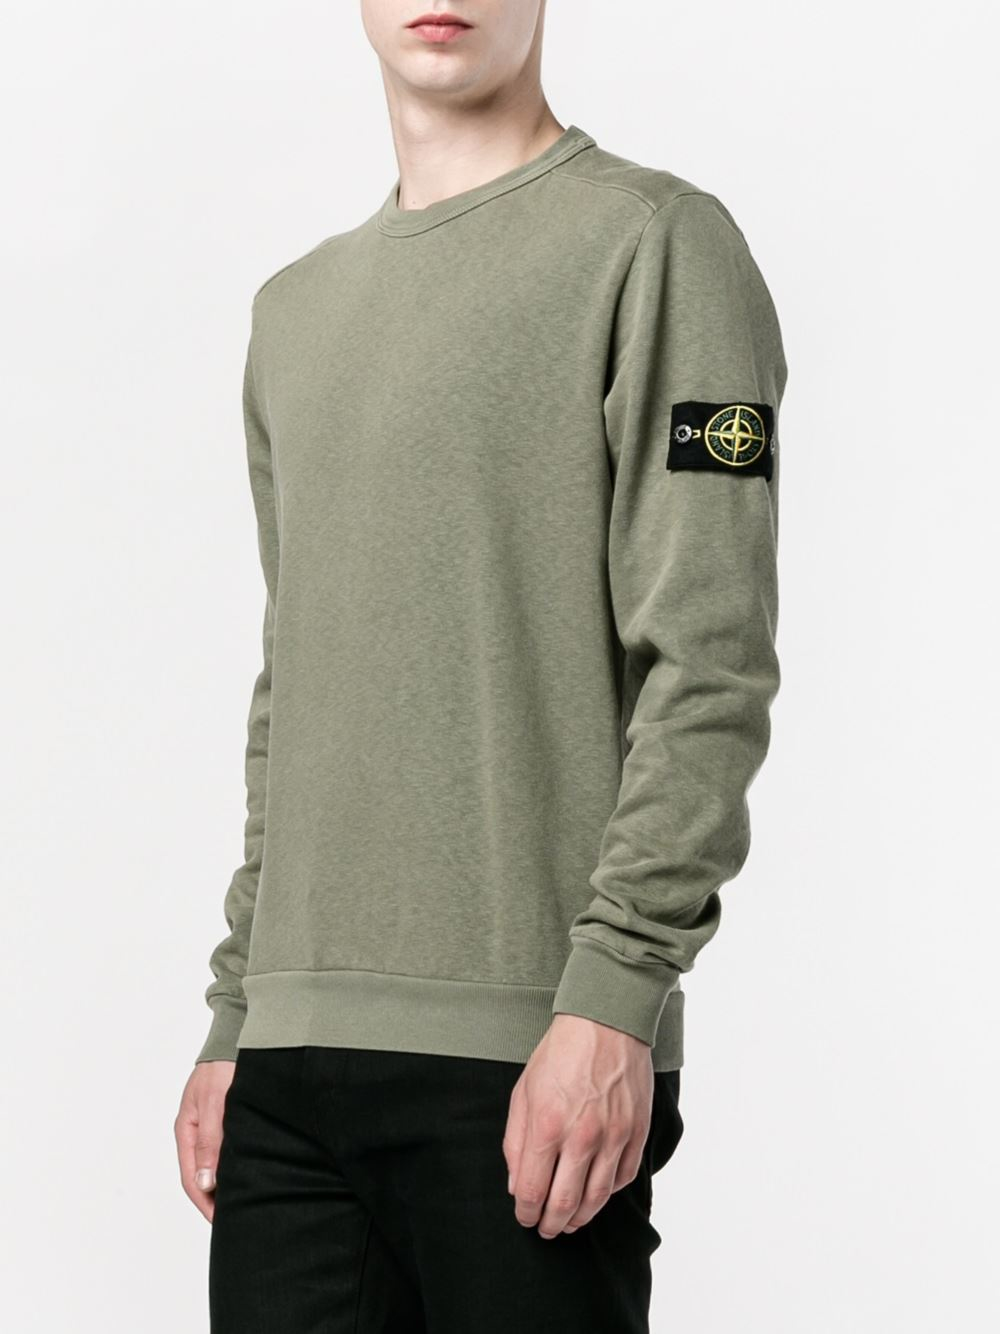 stone island 65360 cotton sweatshirt in blue for men lyst. Black Bedroom Furniture Sets. Home Design Ideas